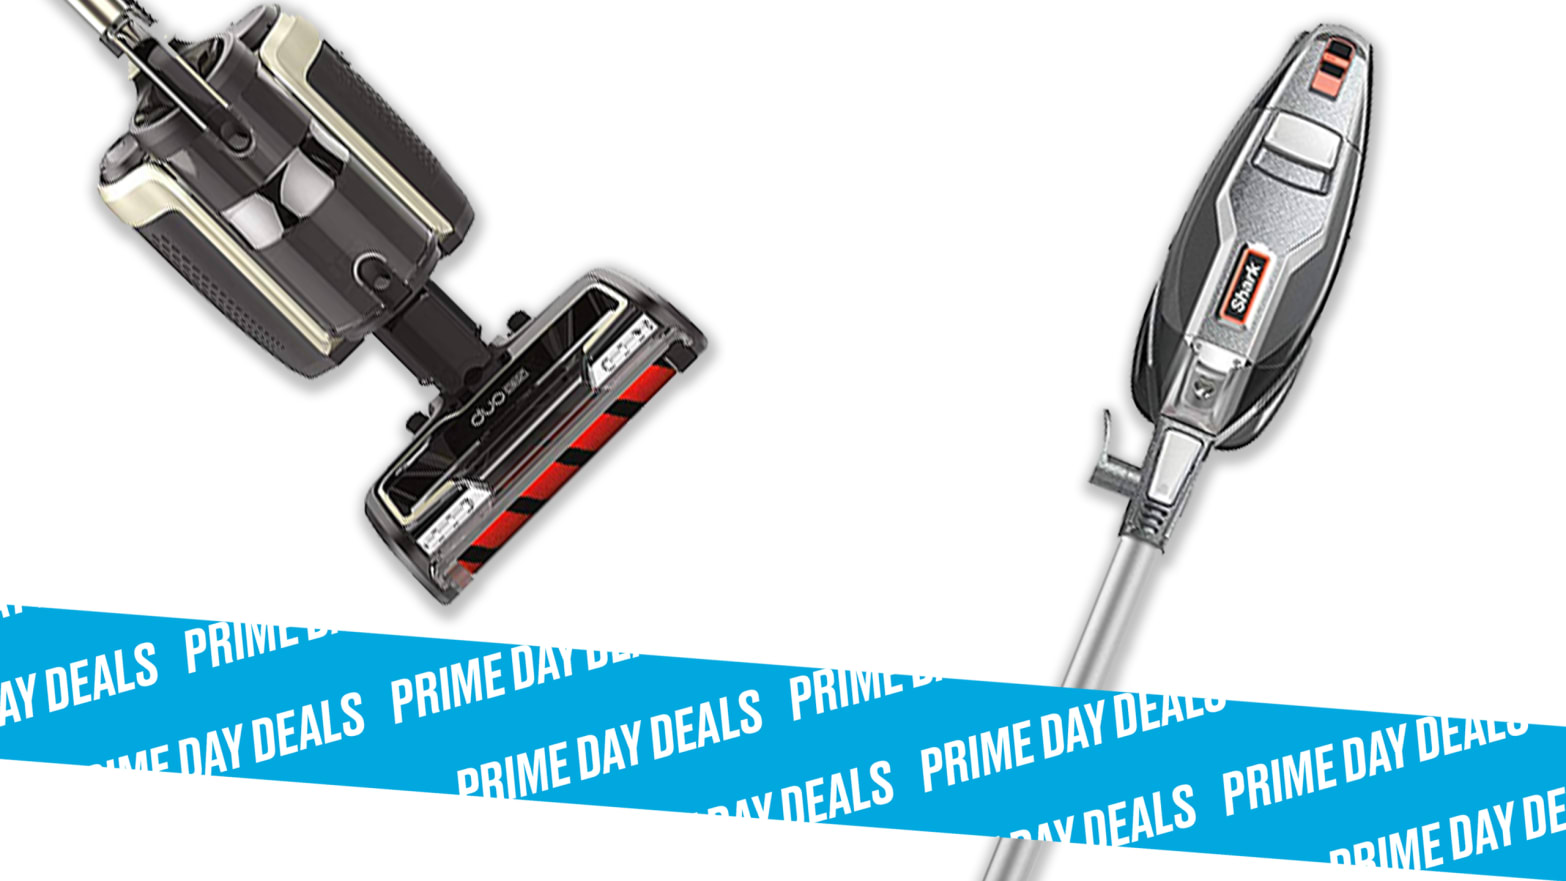 Cordless Shark Vacuums are At Least 50% Off This Prime Day